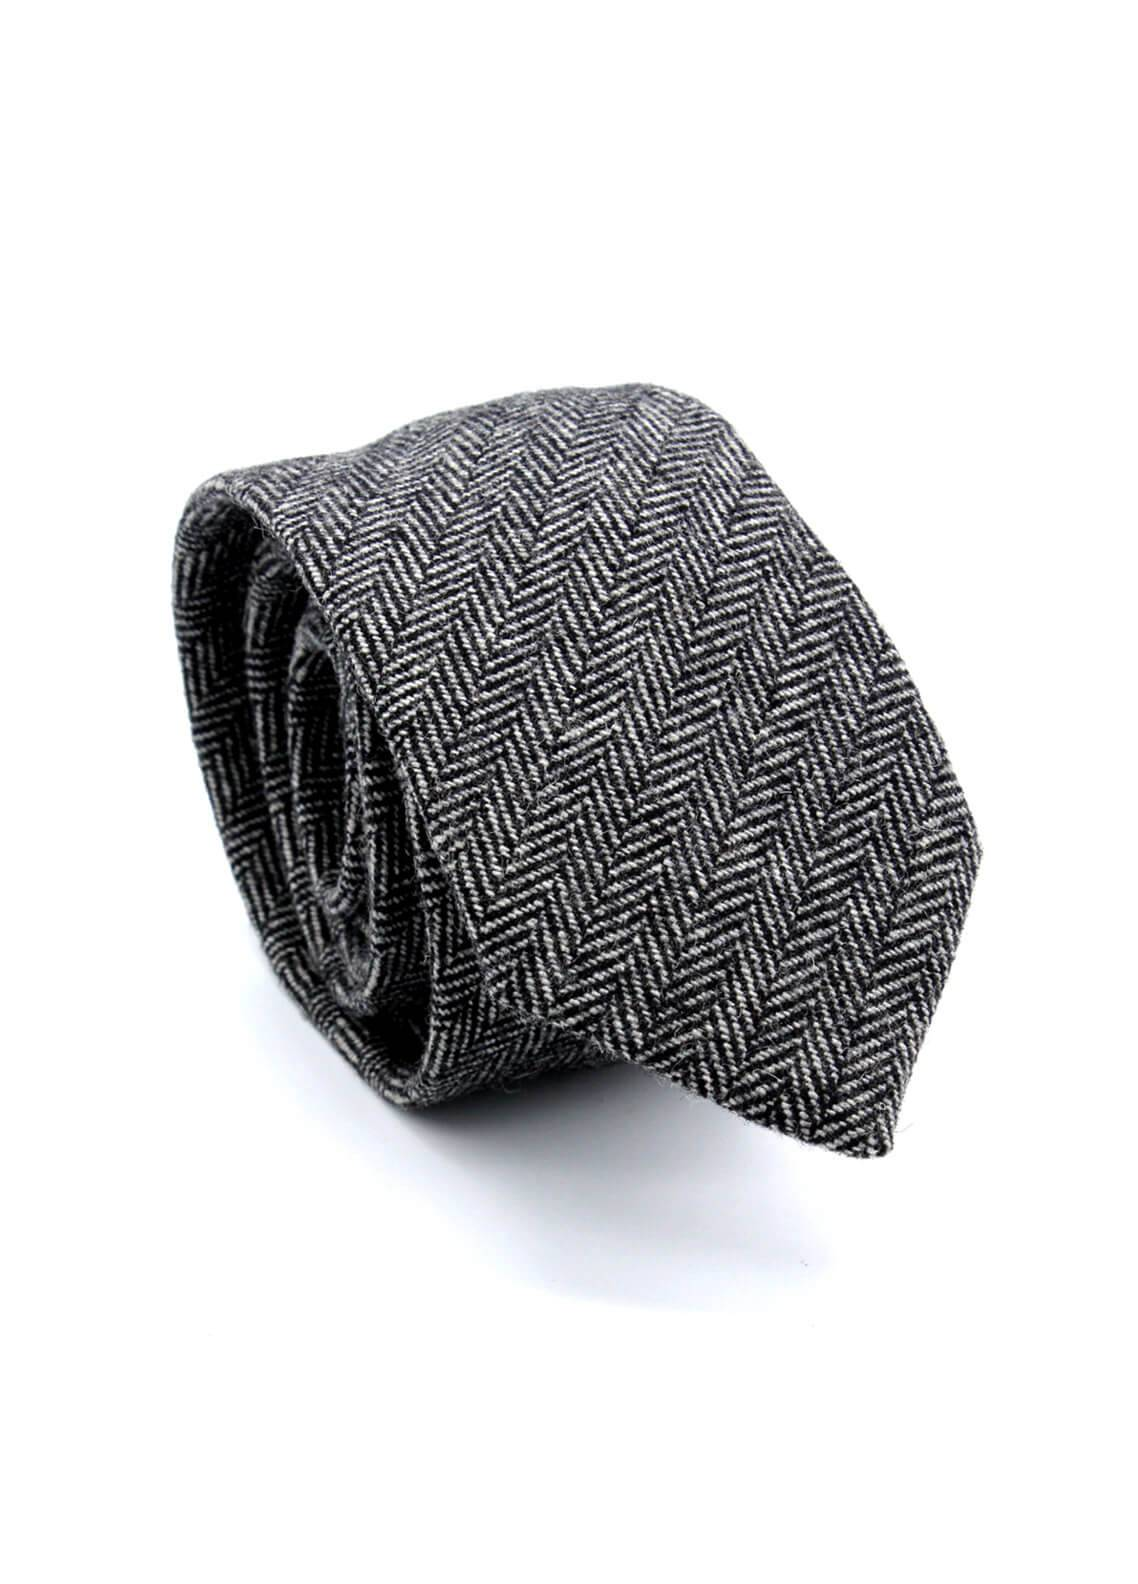 Skangen Narrow Wool Neck Tie Neck Tie SKTI-W-003 -